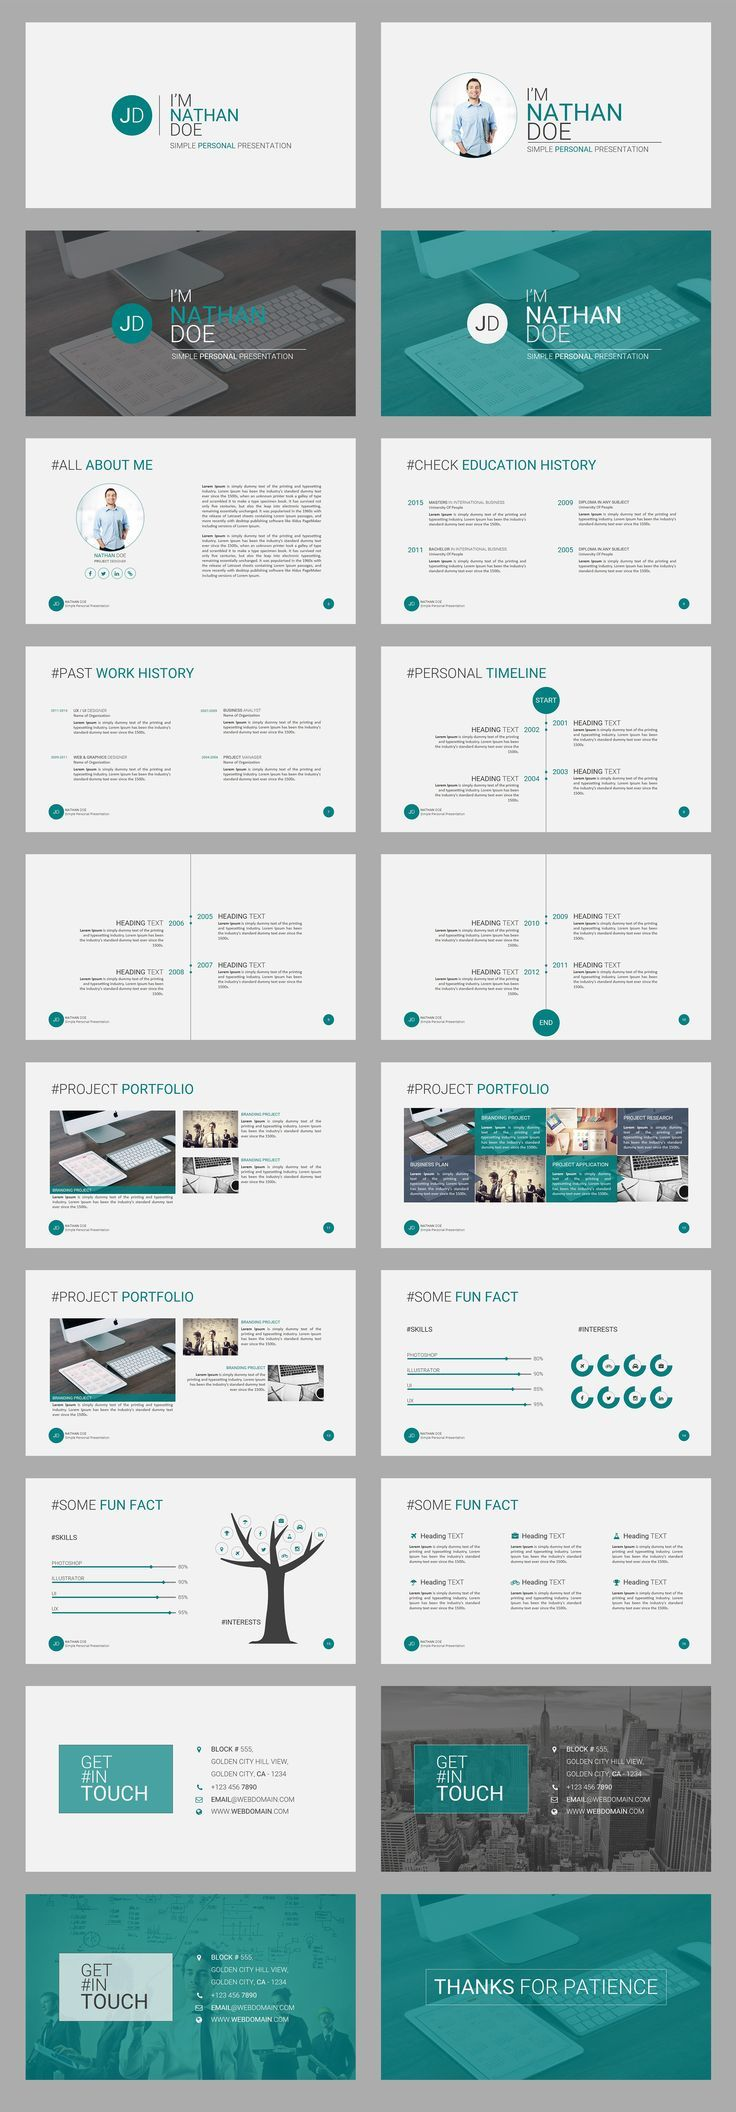 17 best ideas about templates for powerpoint on pinterest